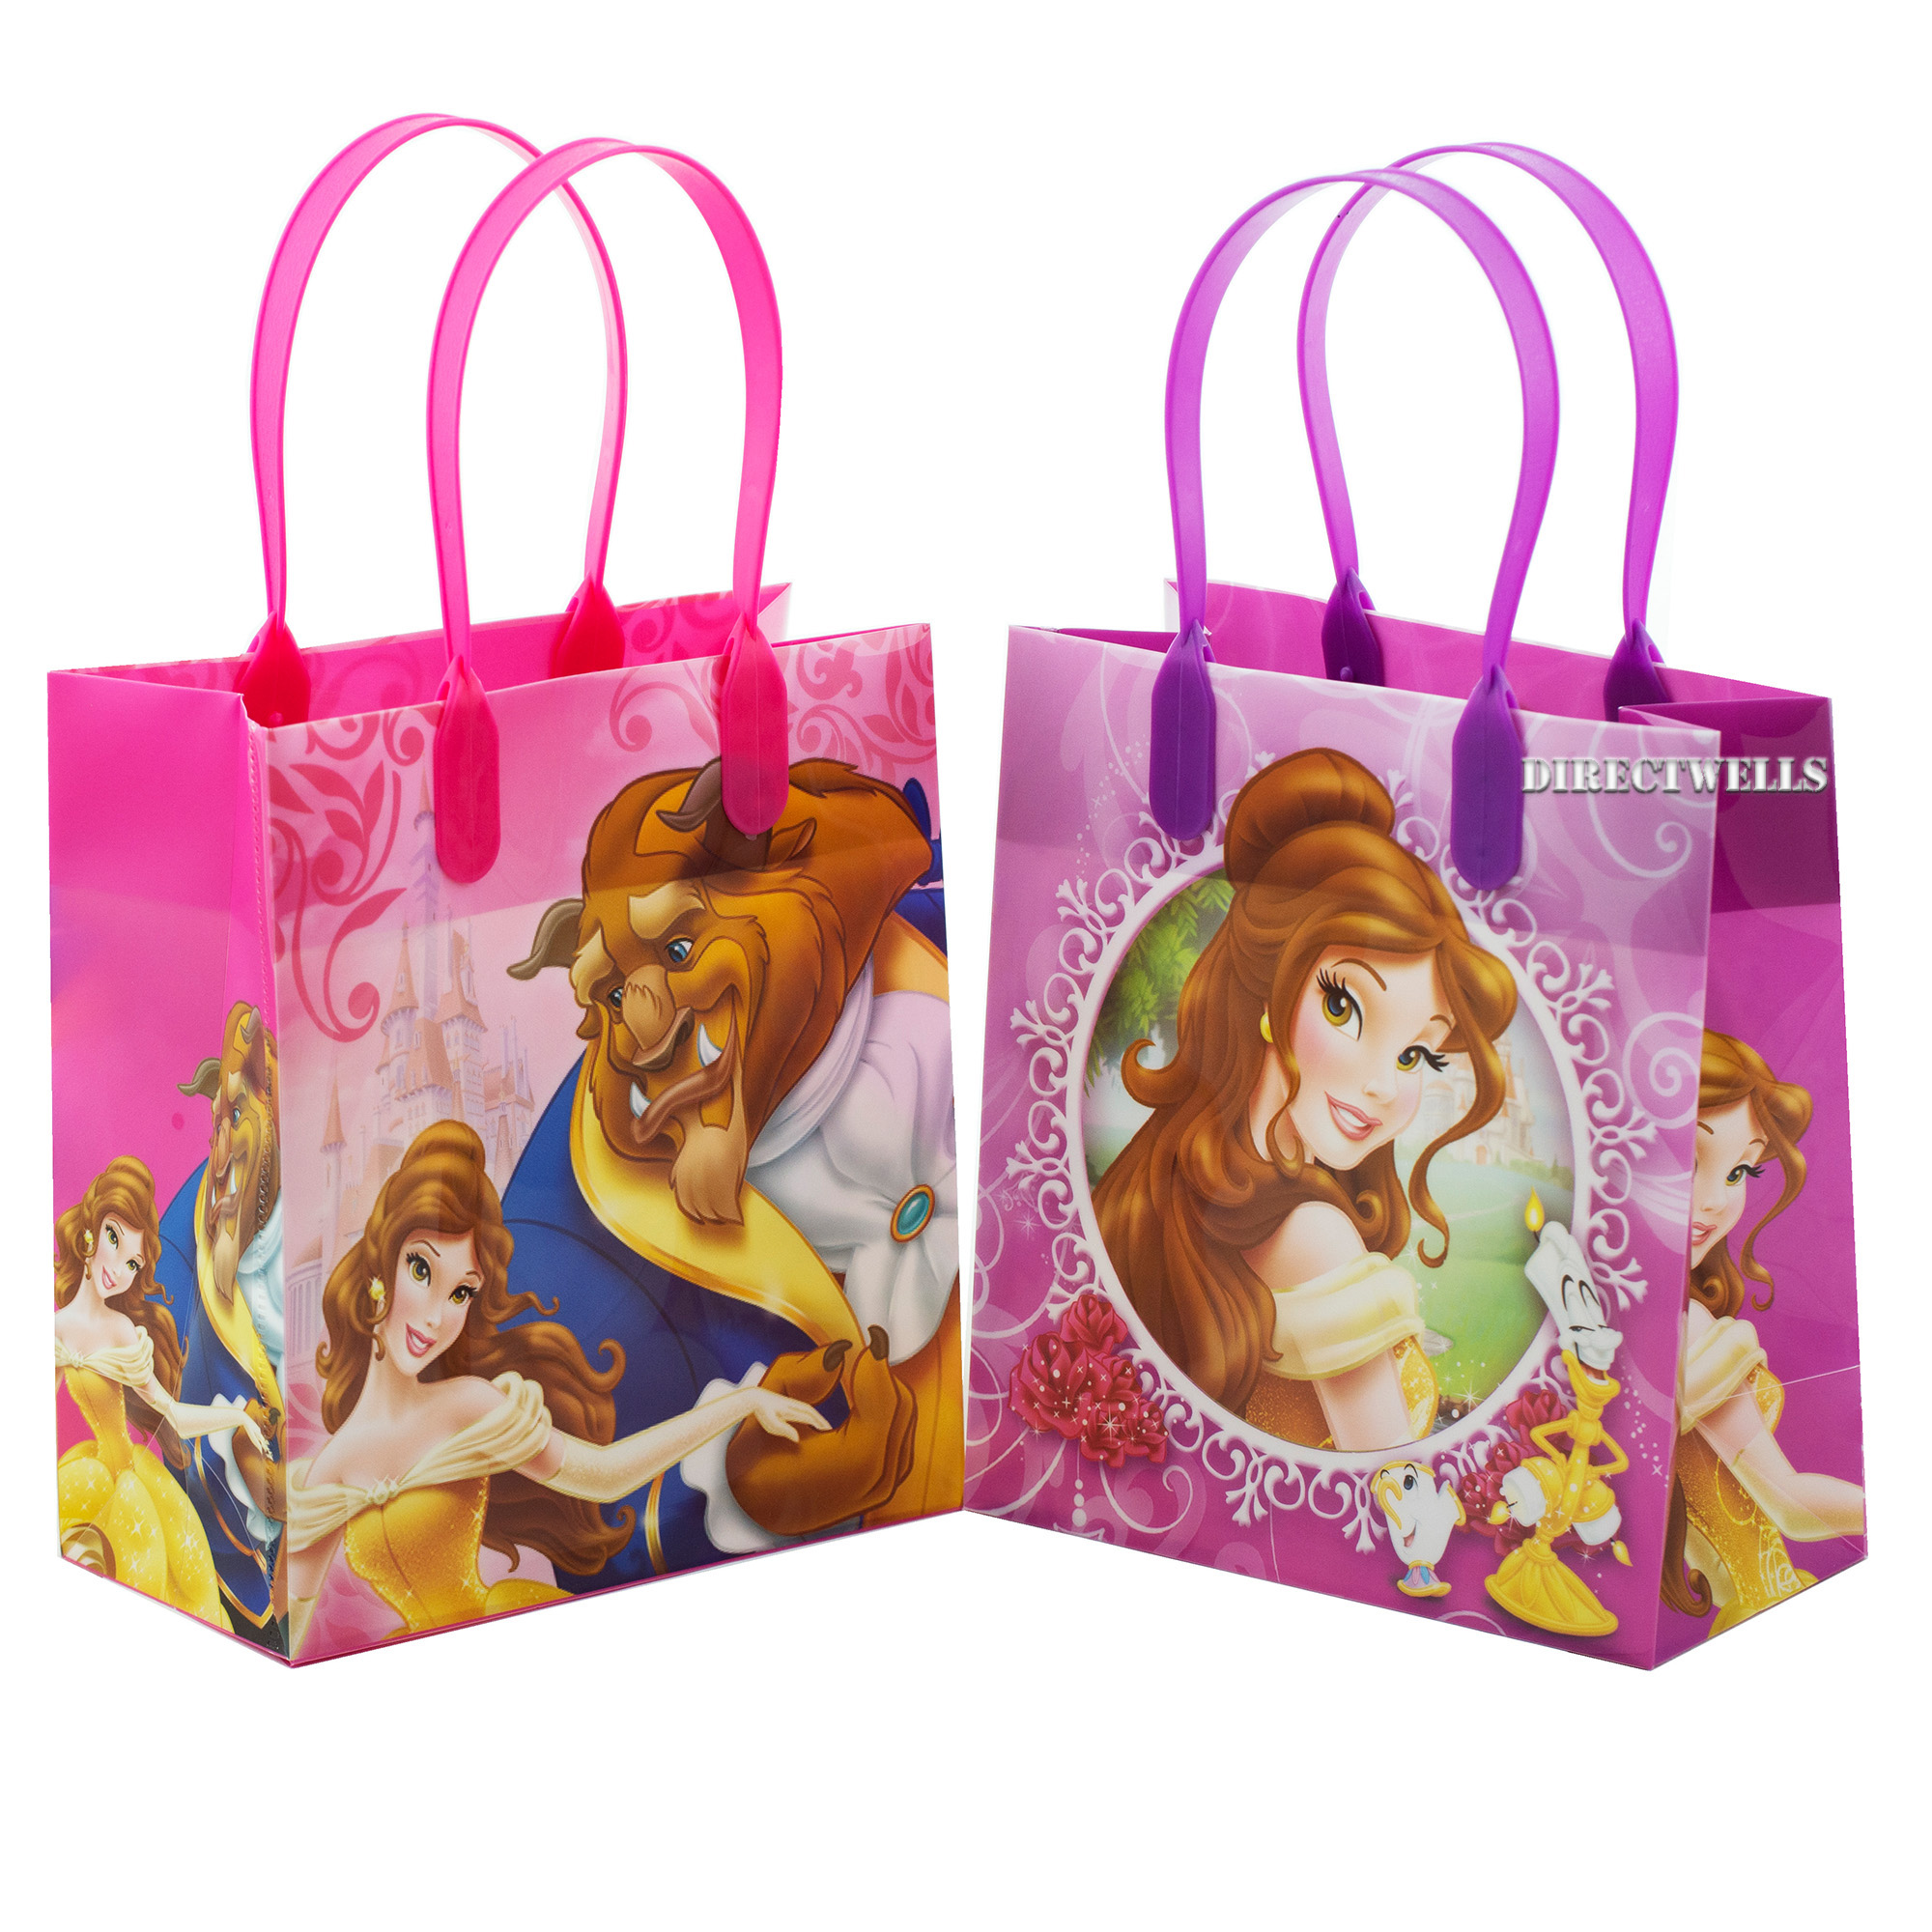 Disney Princess Belle Beauty and The Beast 12 Reusable Small Goodie Bags 6""